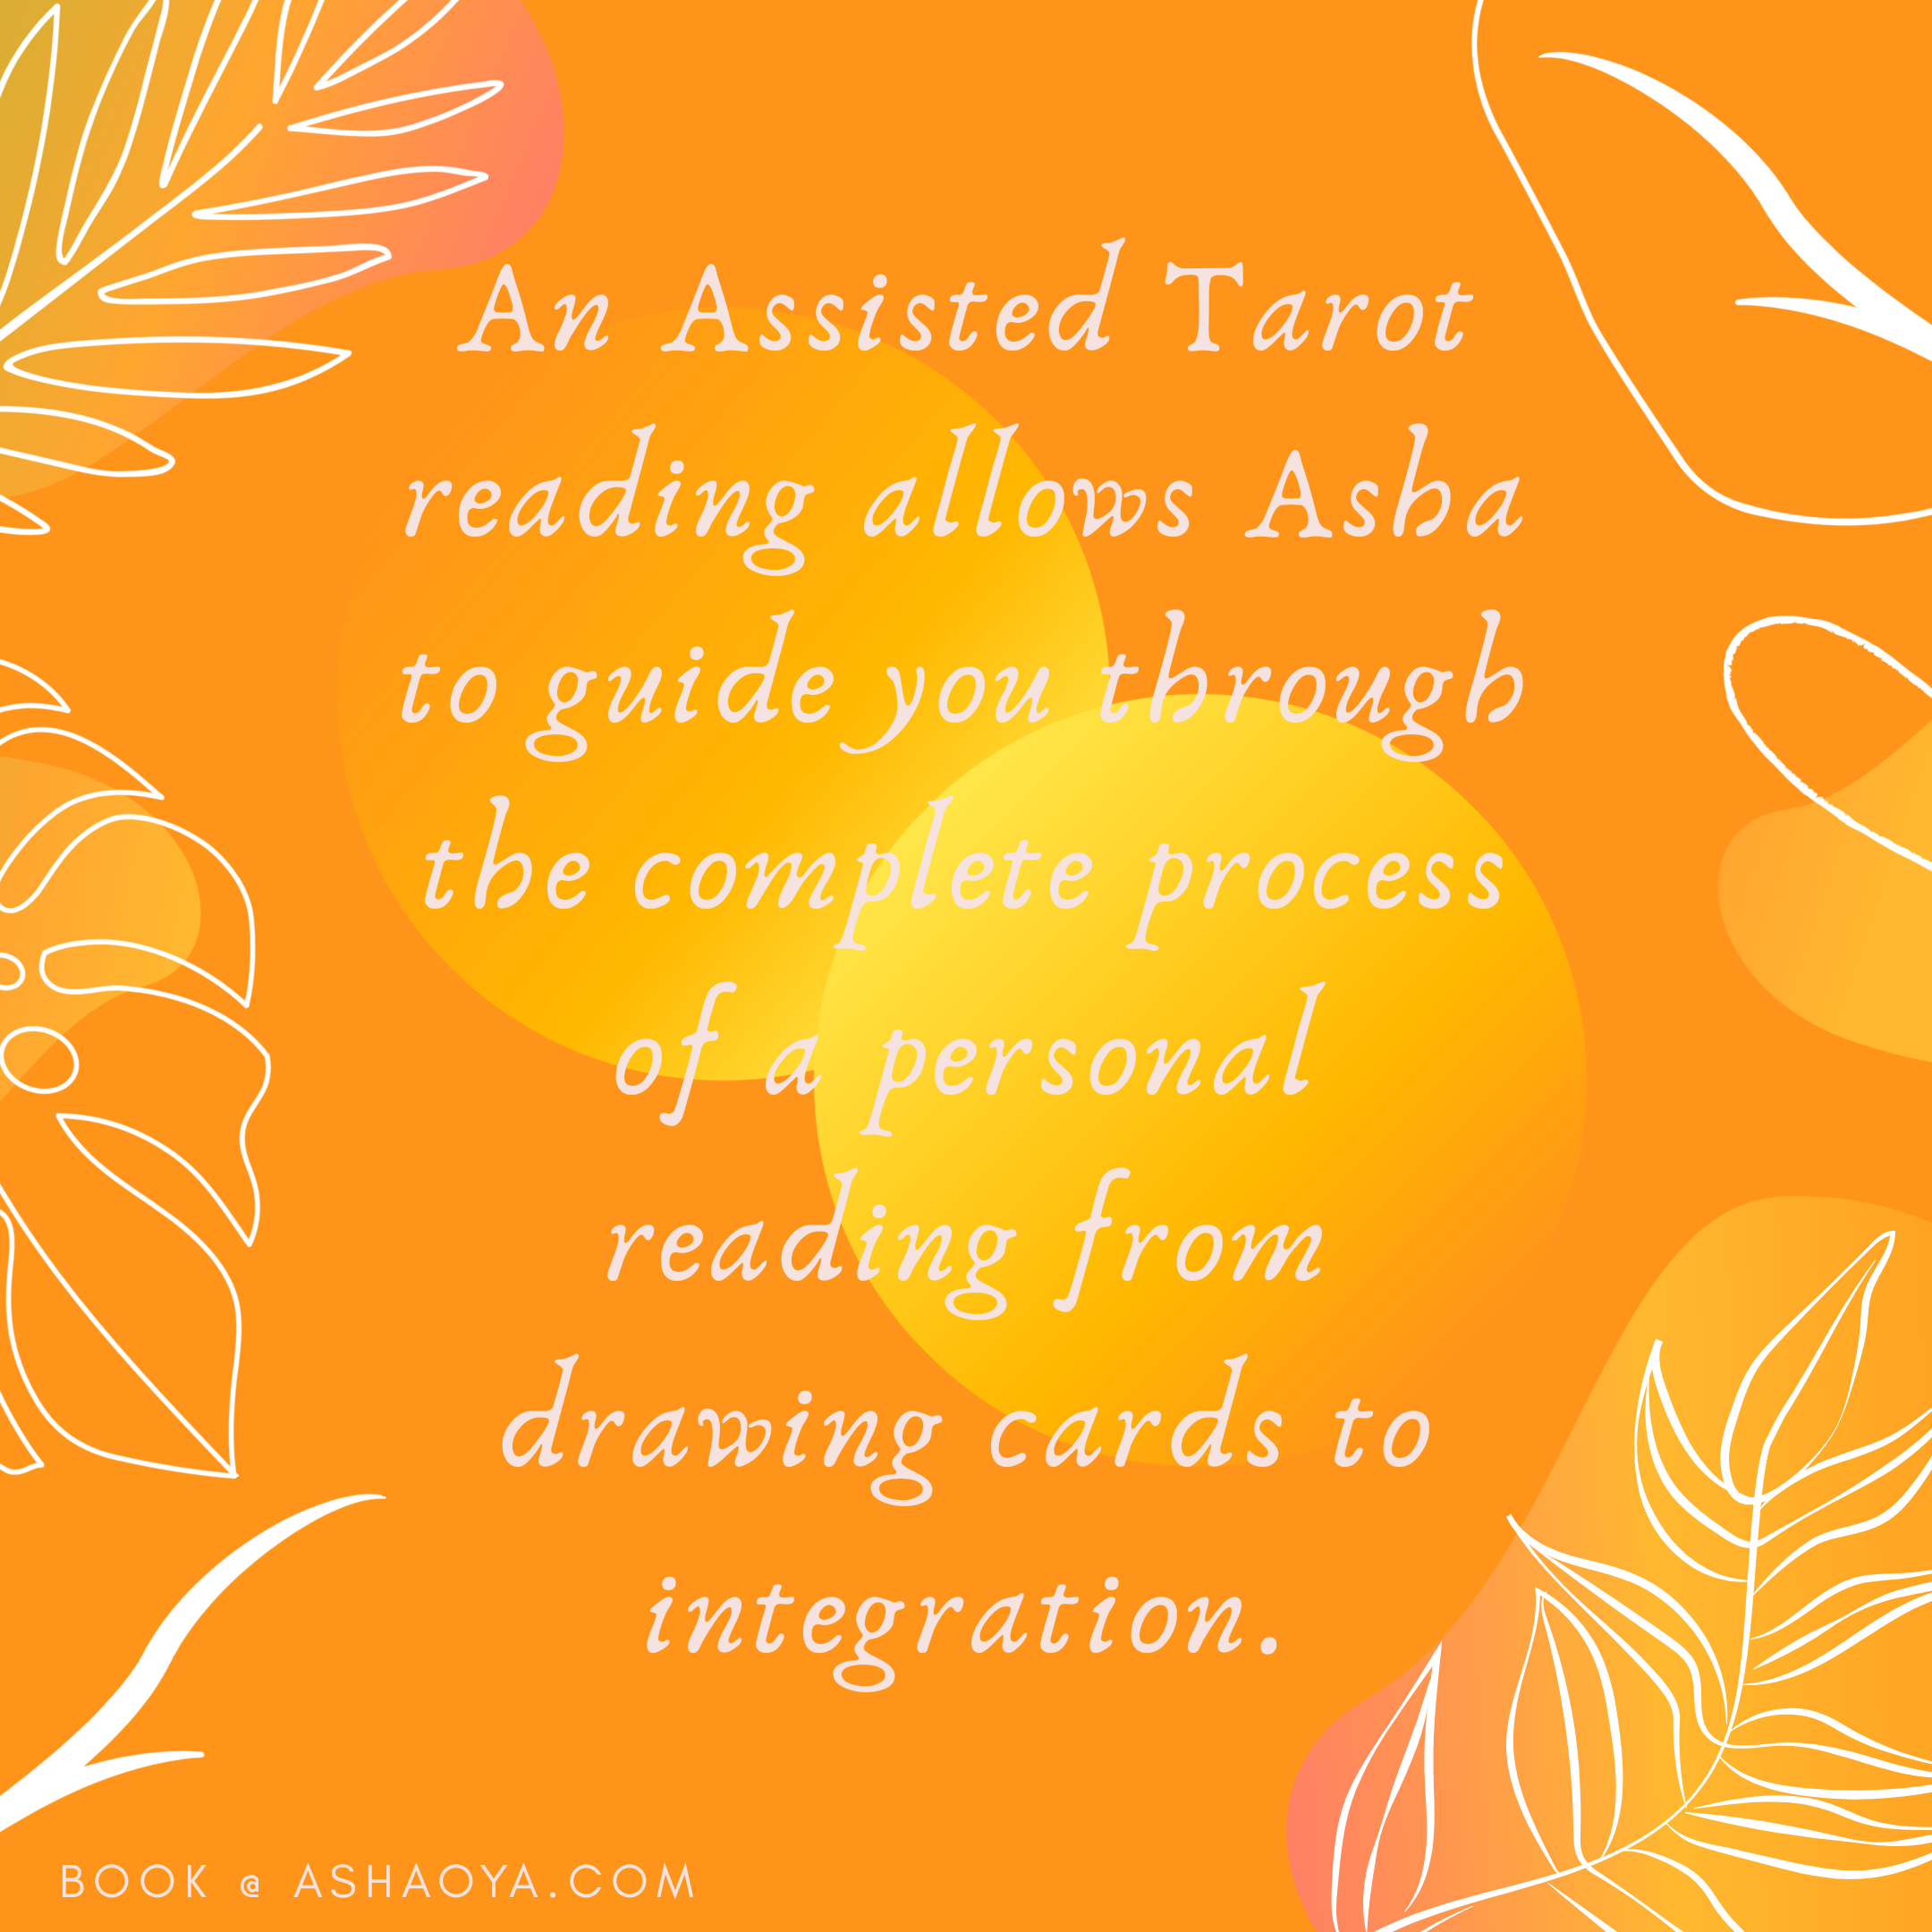 Assisted Tarot Readings